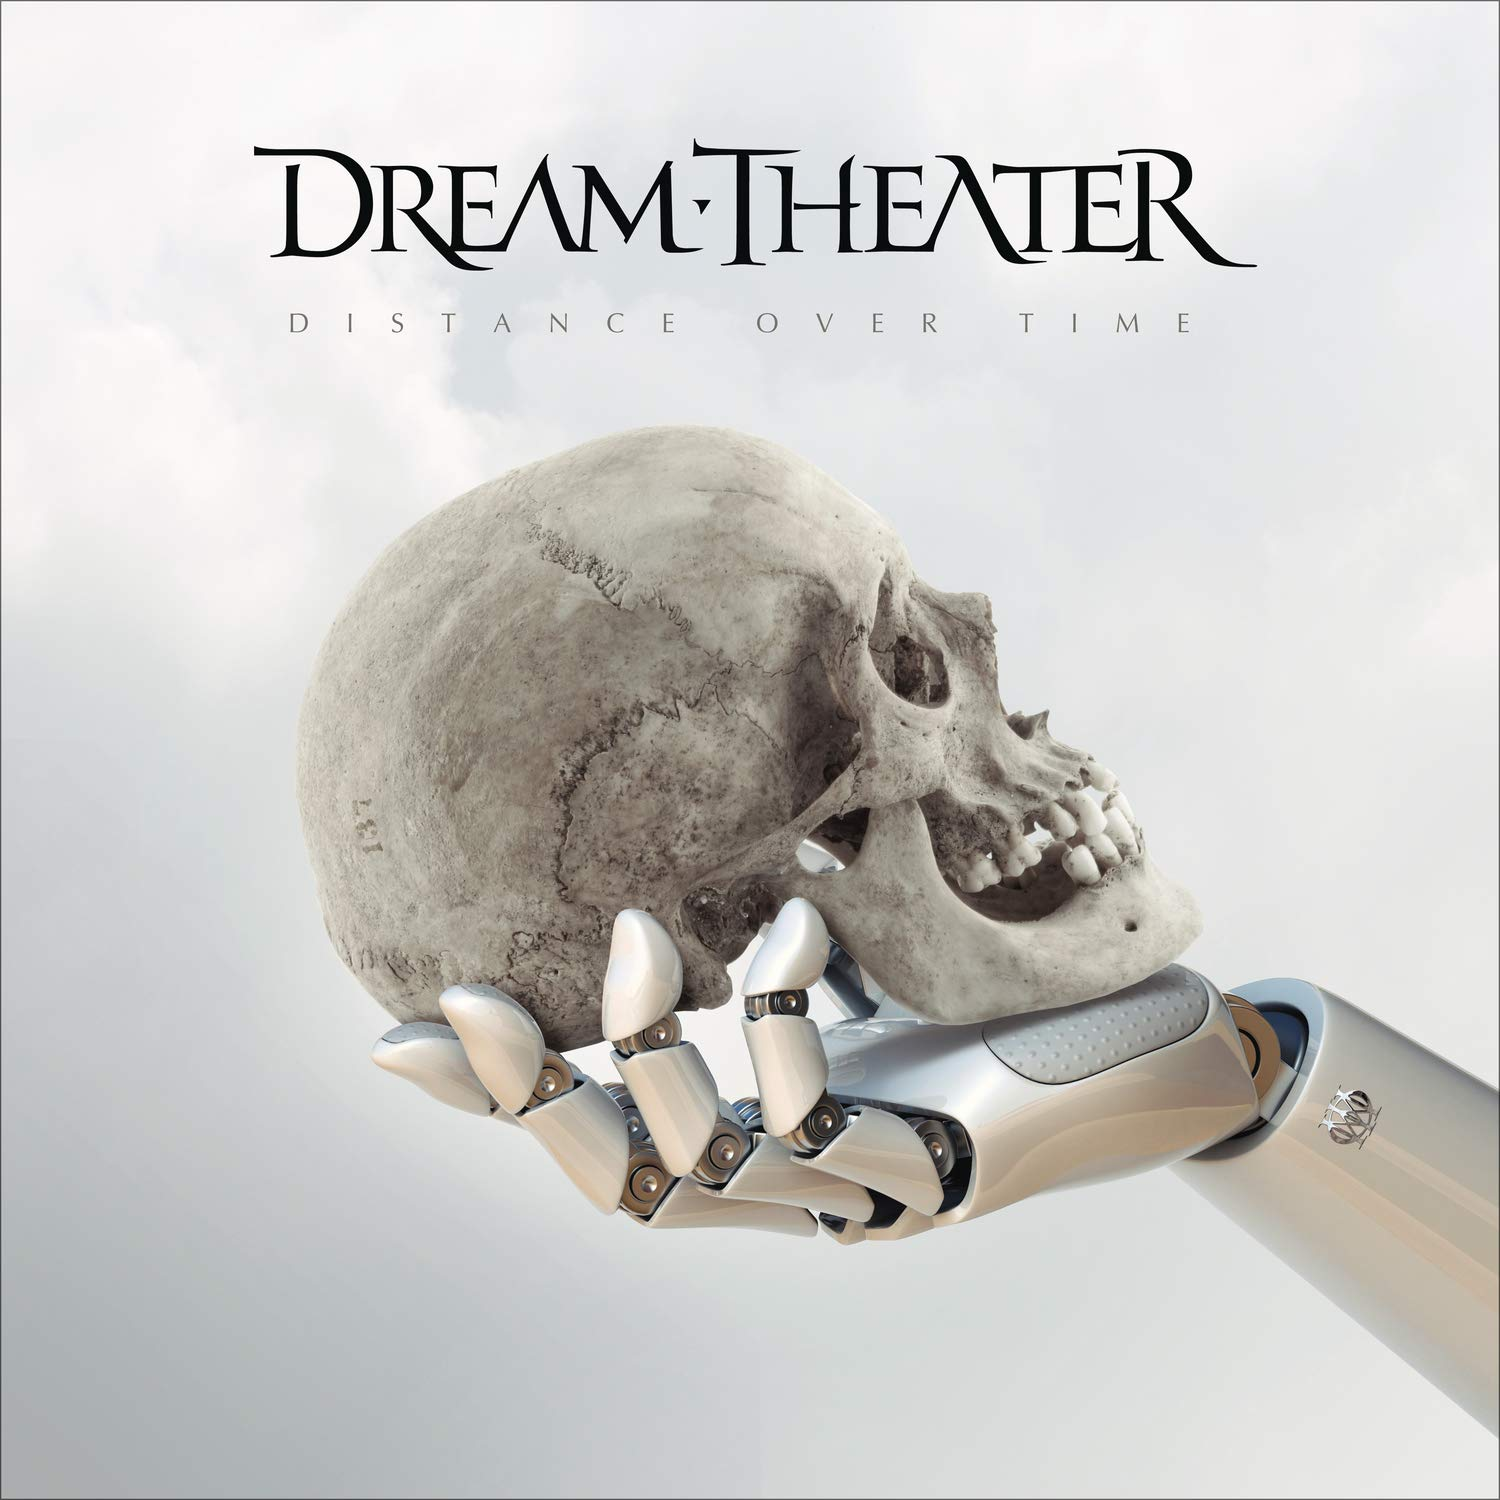 DREAM THEATER - DISTANCE OVER TIME (2 CD+DVD+BLU-RAY) (CD)